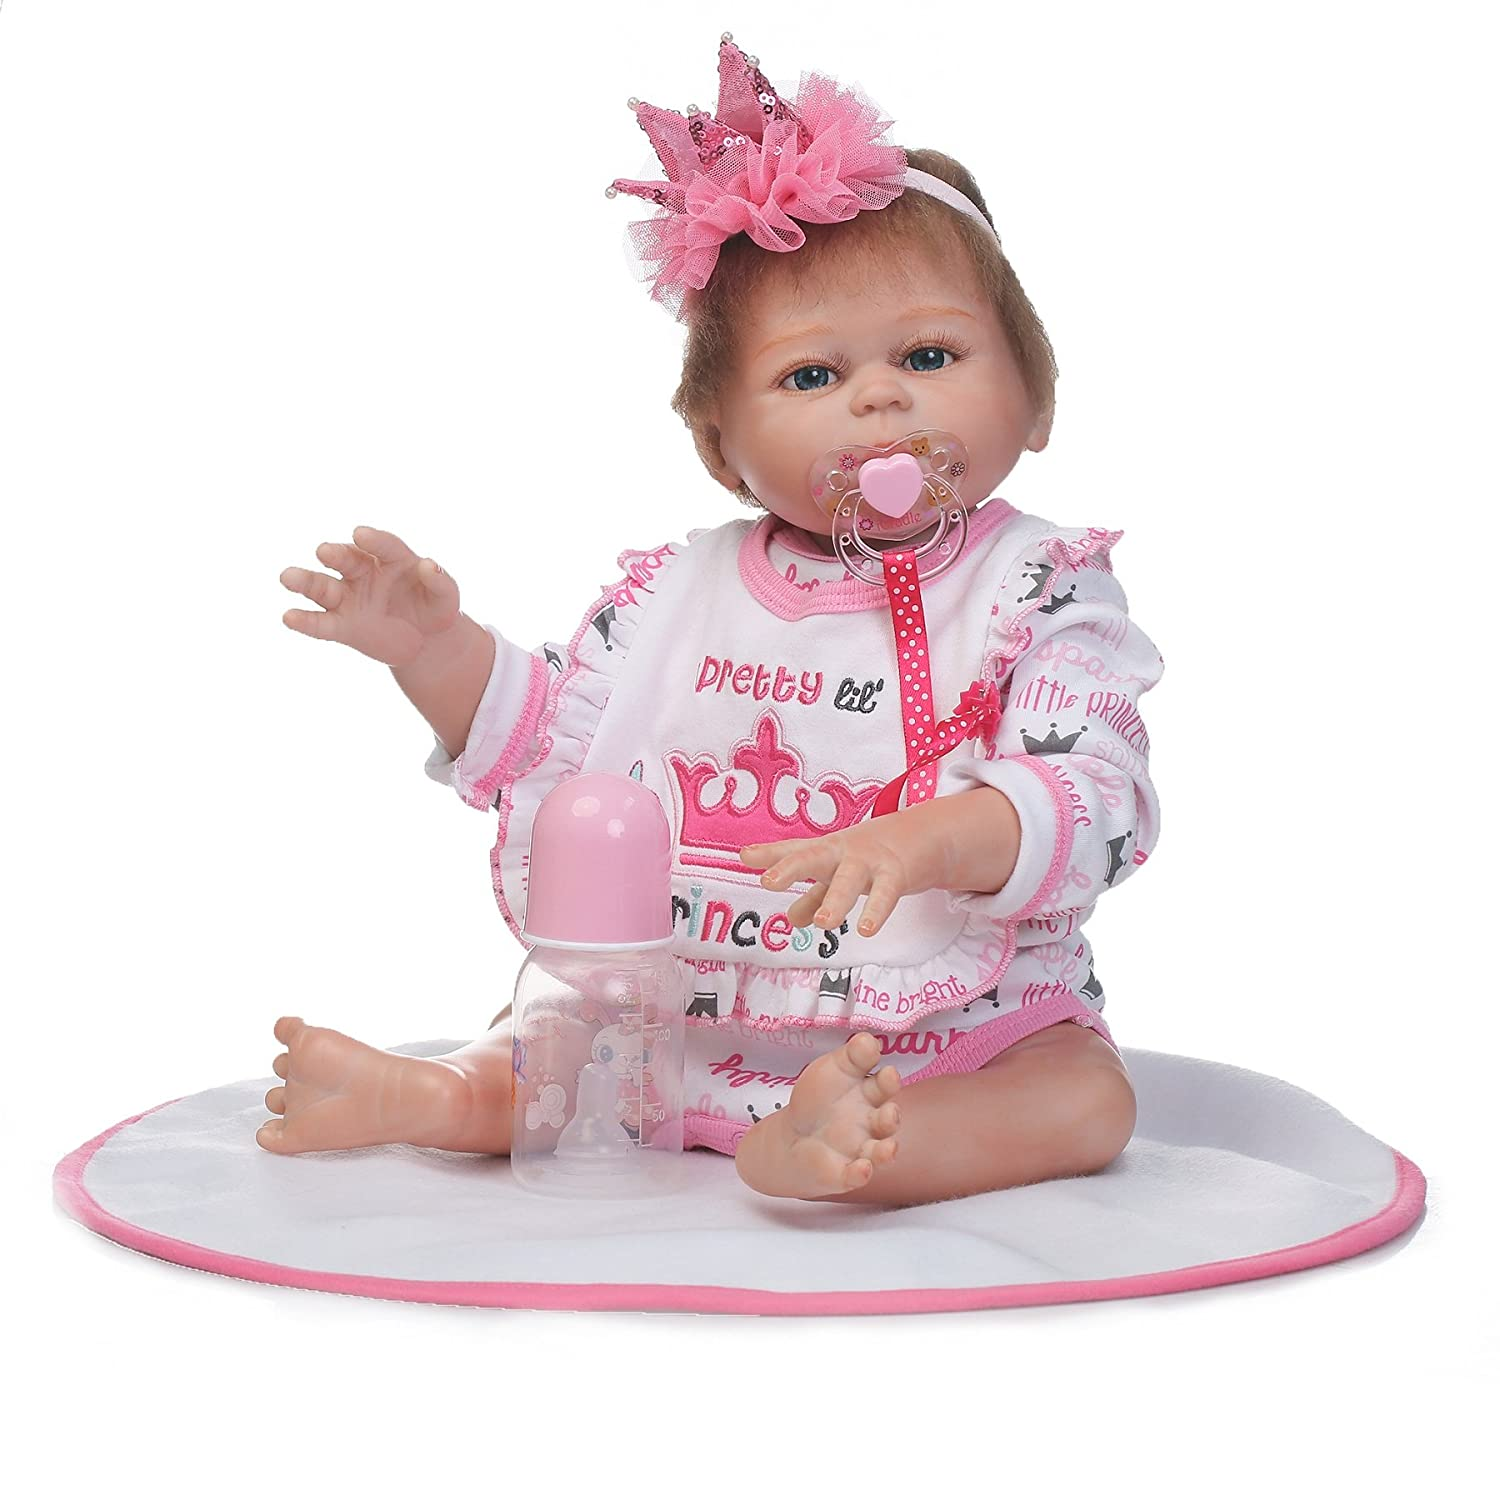 NPK Reborn Baby Doll Baby Girl Full Body Silicone 20inch Realistic Anatomically Correct Washable Pink Outfit NPKDOLLS